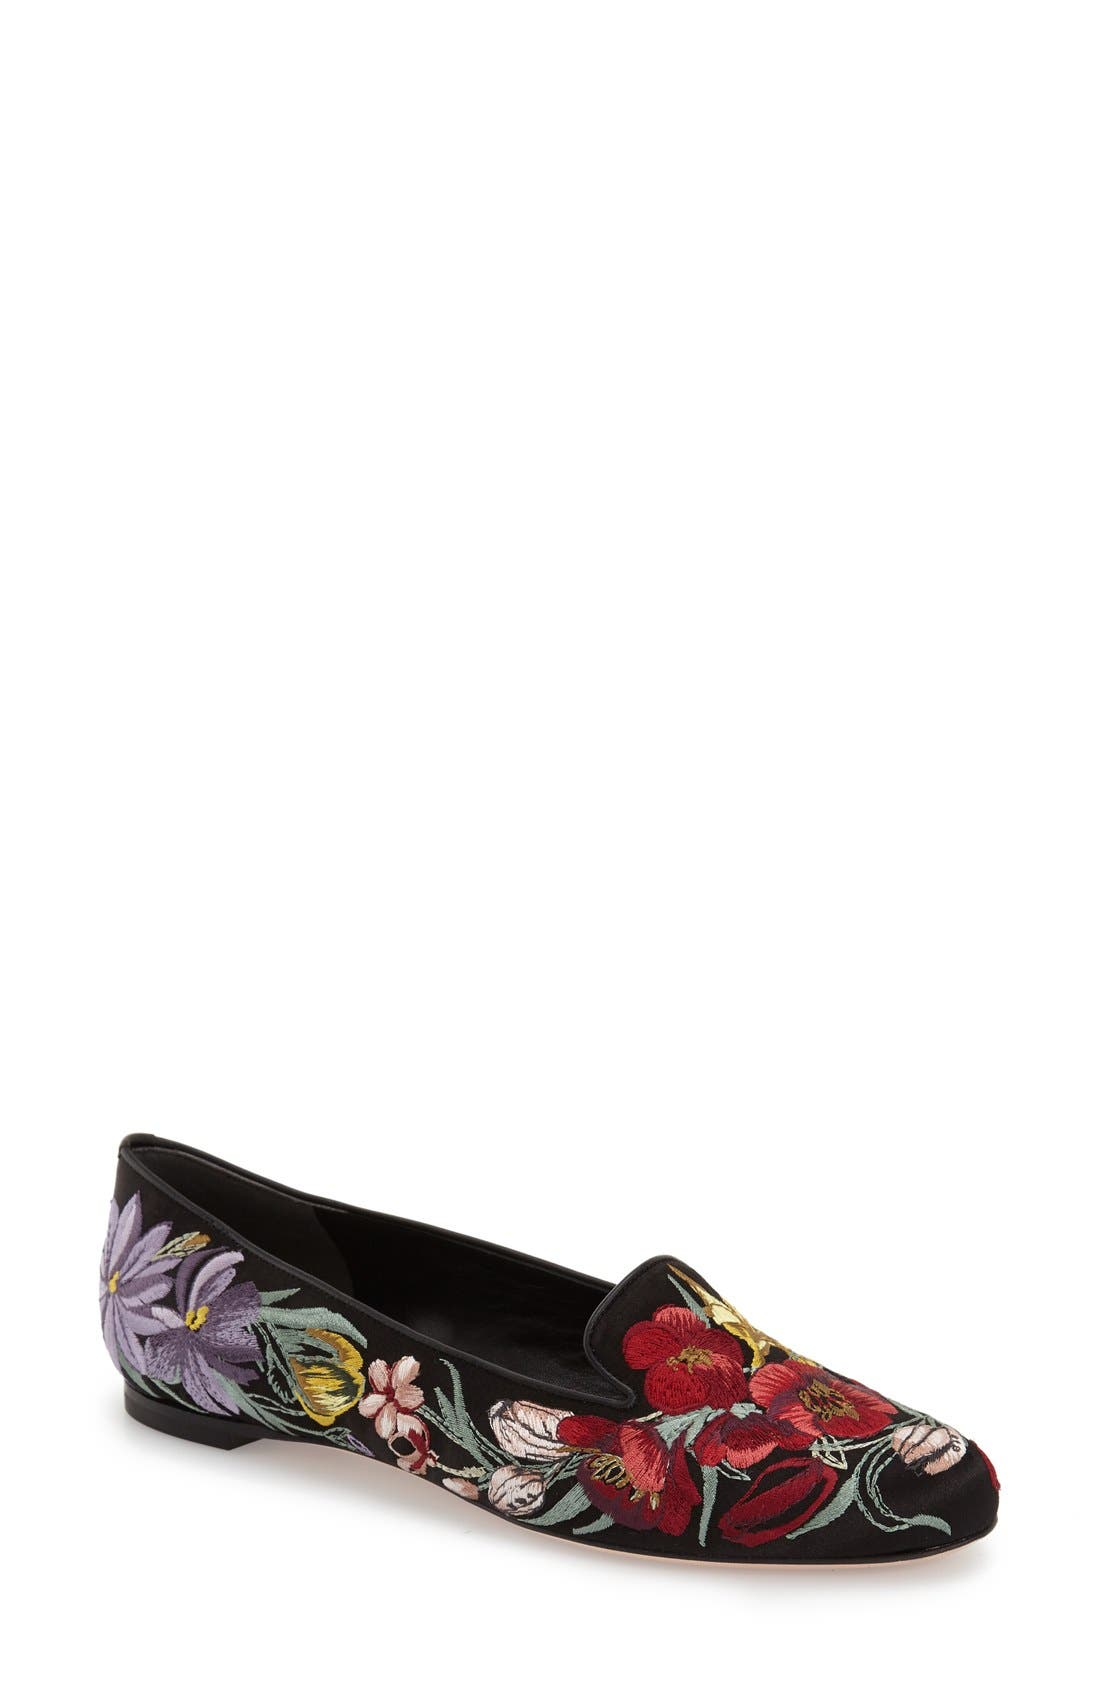 Main Image - Alexander McQueen Embroidered Flower Loafer (Women)